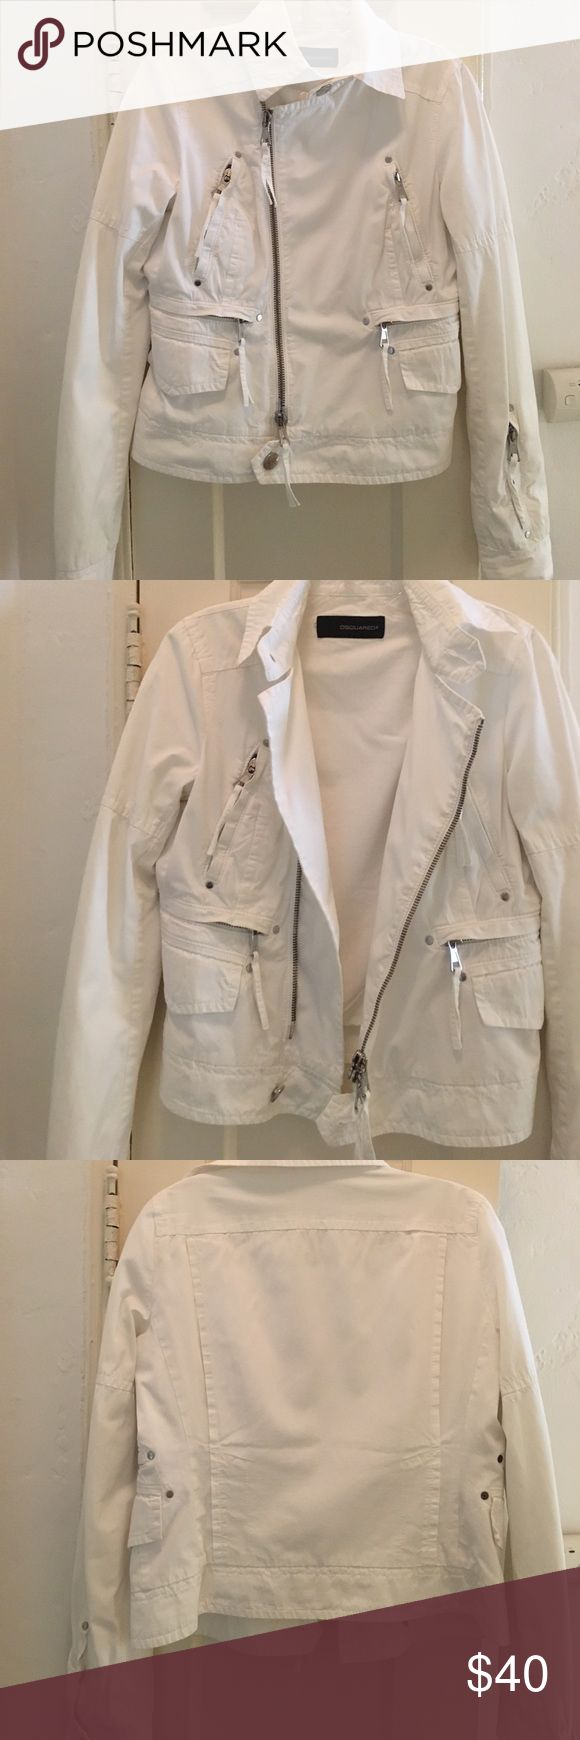 DSQUARED2 white cotton moto style jacket Tough moto jacket style in crisp white cotton makes dressing cool in summer easy. Hardware logo, functional pockets and matching white lining. Good used condition. DSQUARED Jackets & Coats